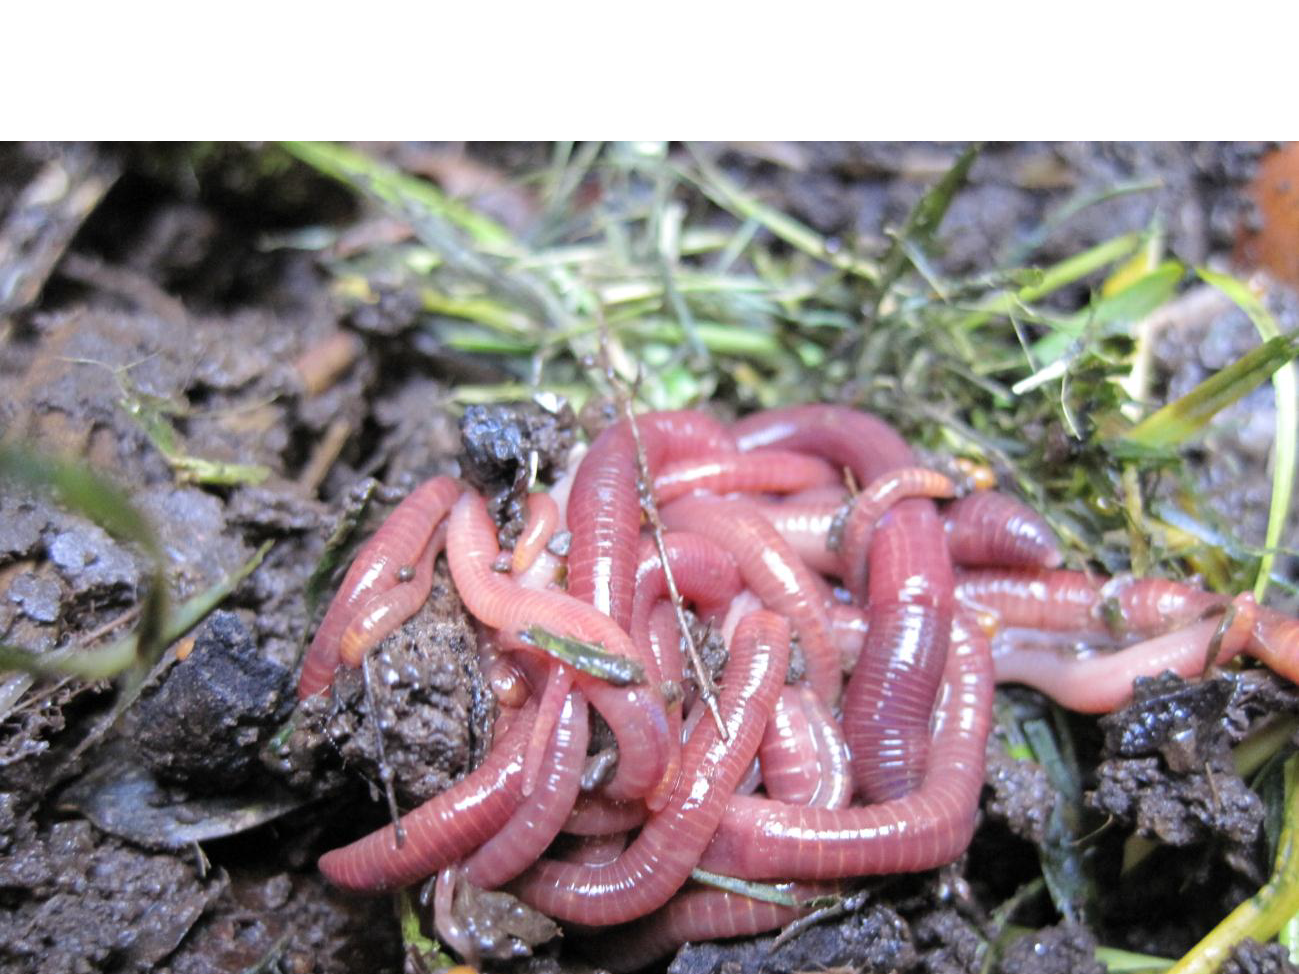 with earthworms is a known